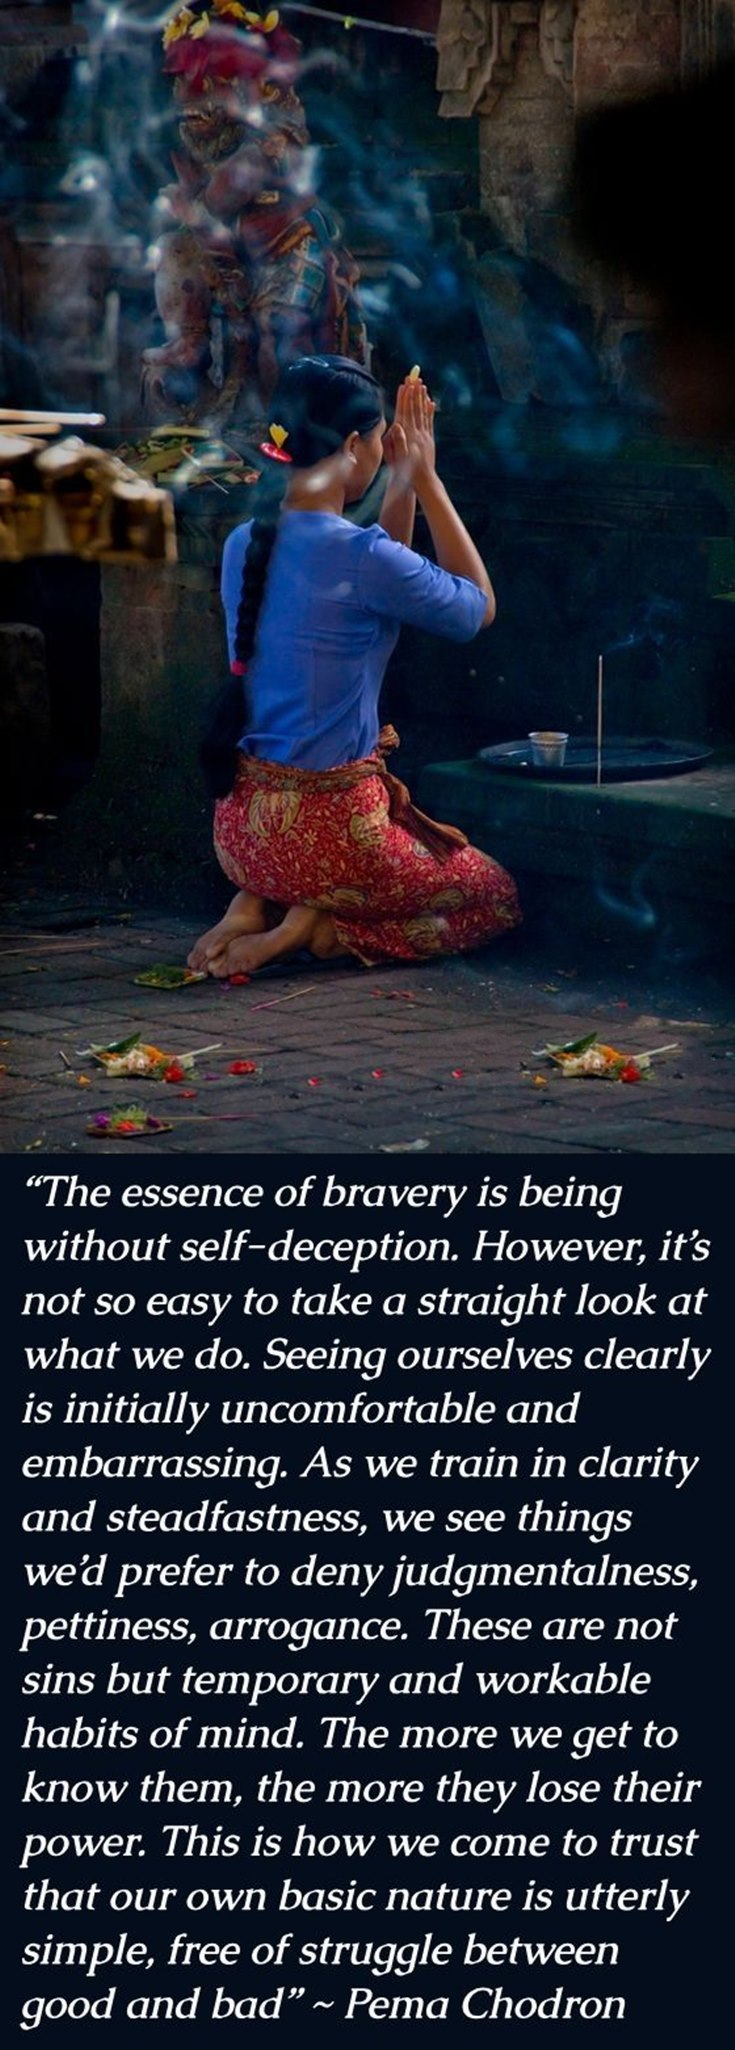 100 Inspirational Buddha Quotes And Sayings That Will Enlighten You 62